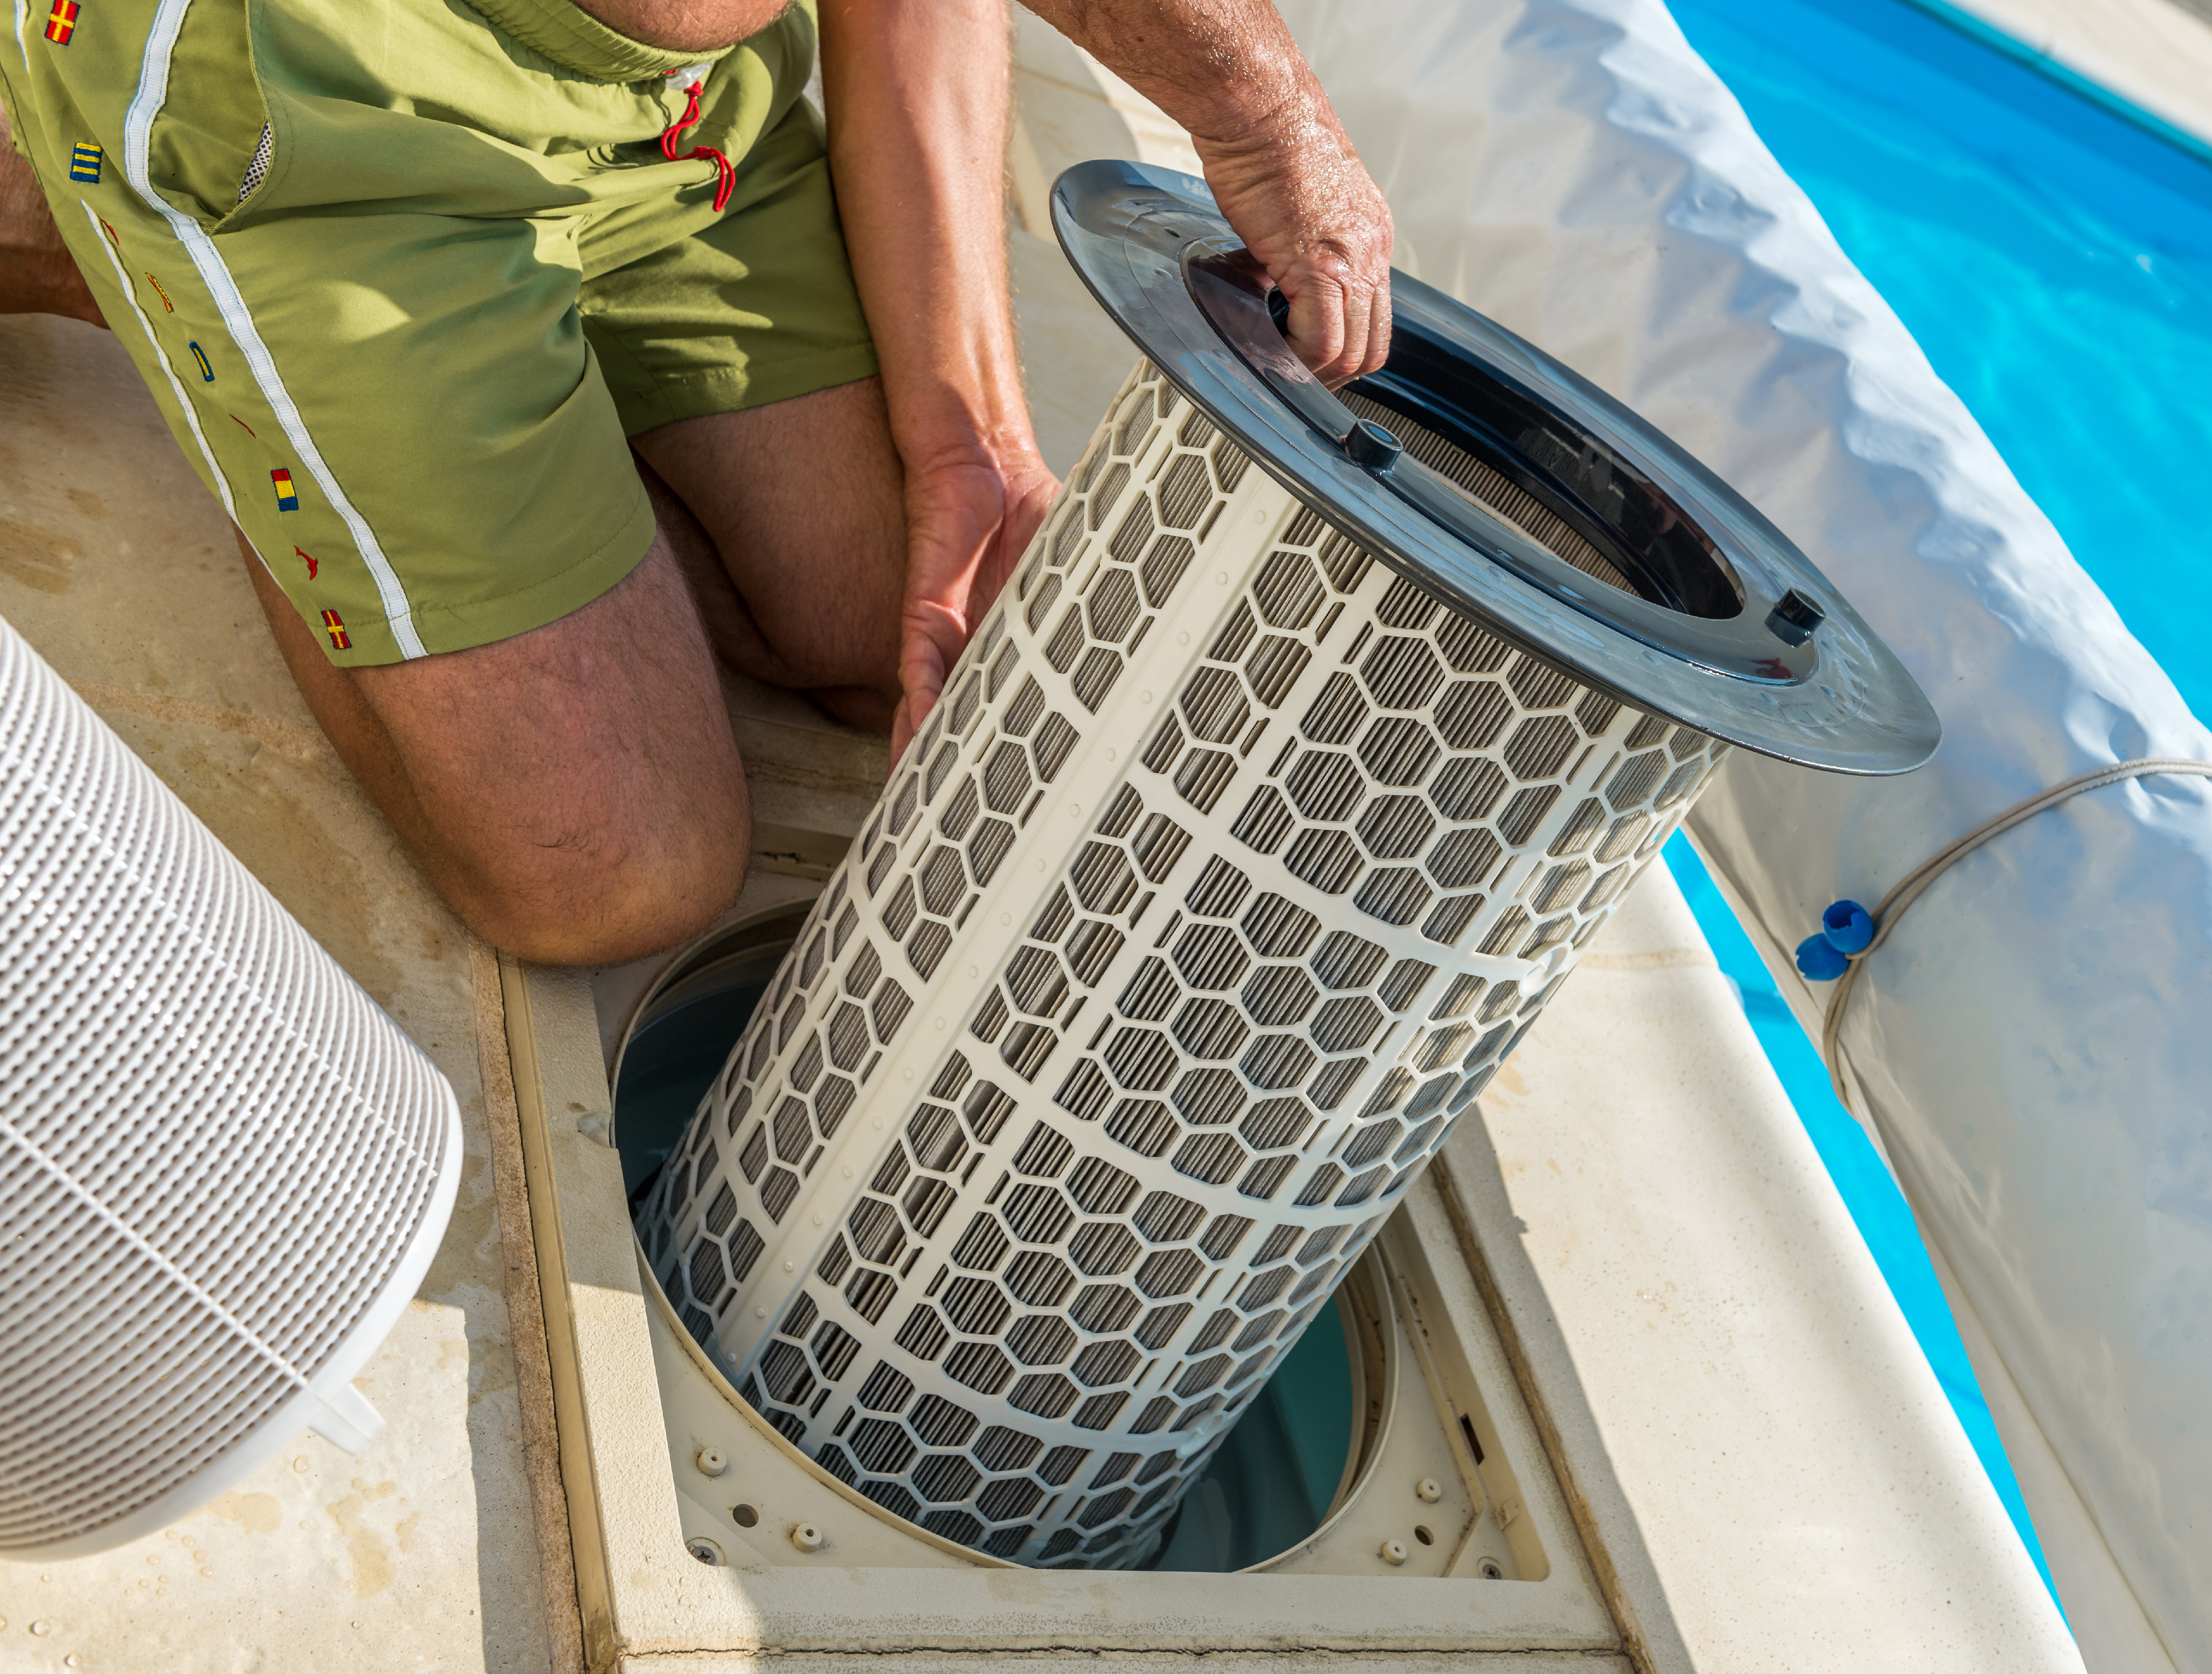 Swimming Pool Filter System Highly Reliable Warranted